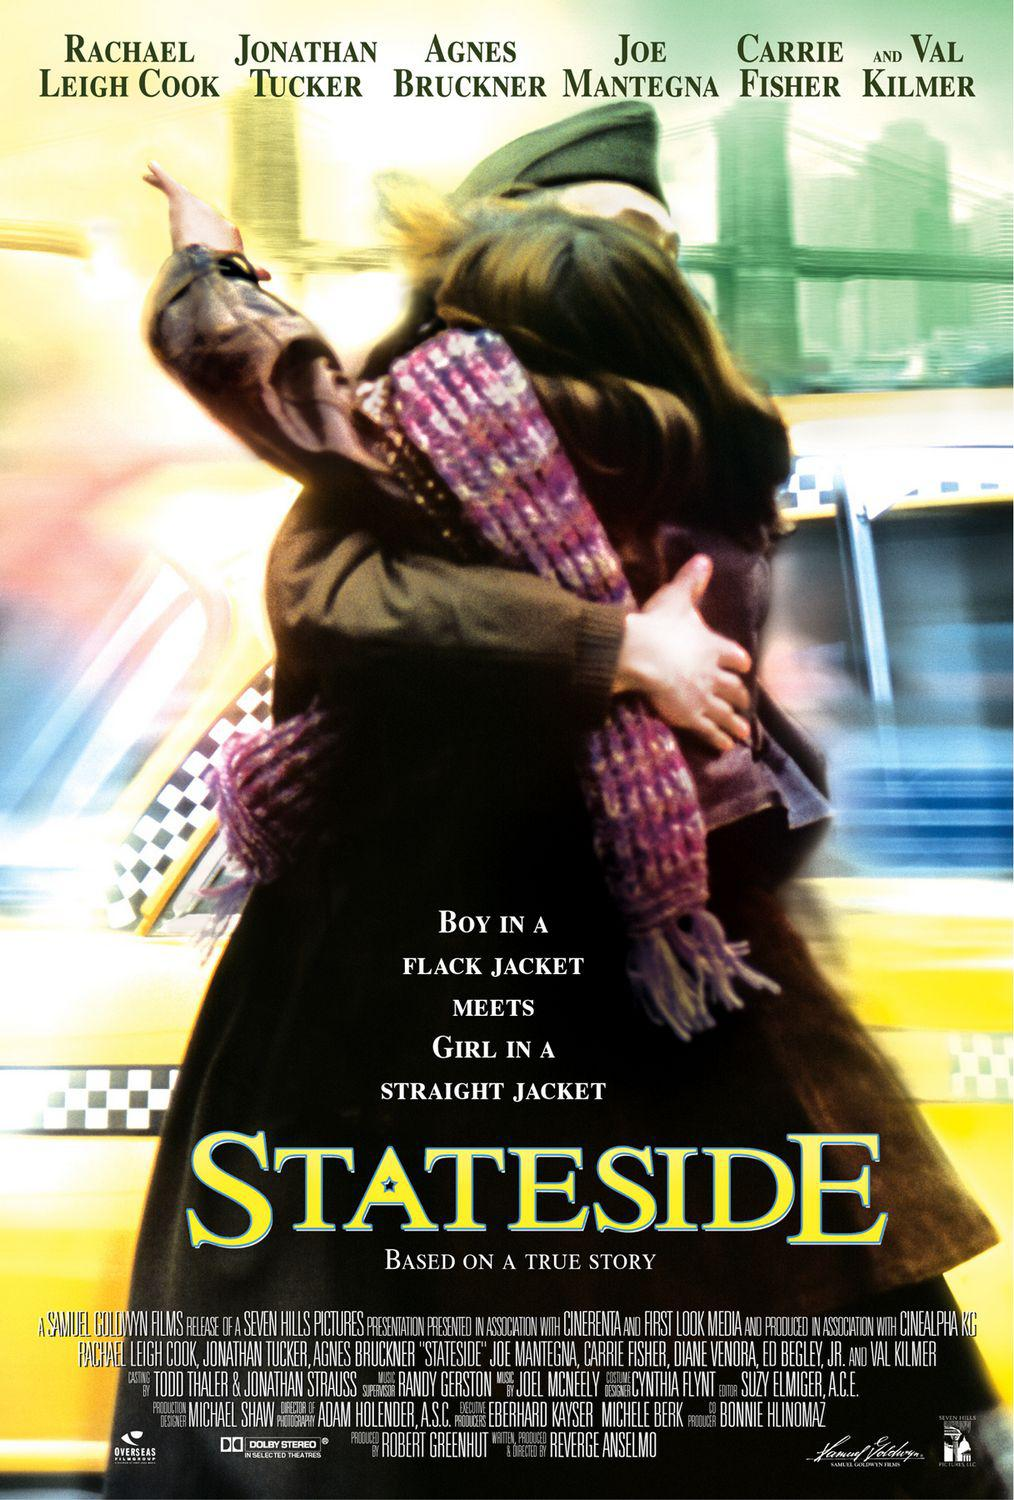 Stateside - Rachael Leigh Cook - Jonathan Tucker - Agnes Bruckner - Joe Mantegna - Carrie Fisher - Val Kilmer - Boy in a Flack Jacket meets Girl in a Straight Jacket - film poster